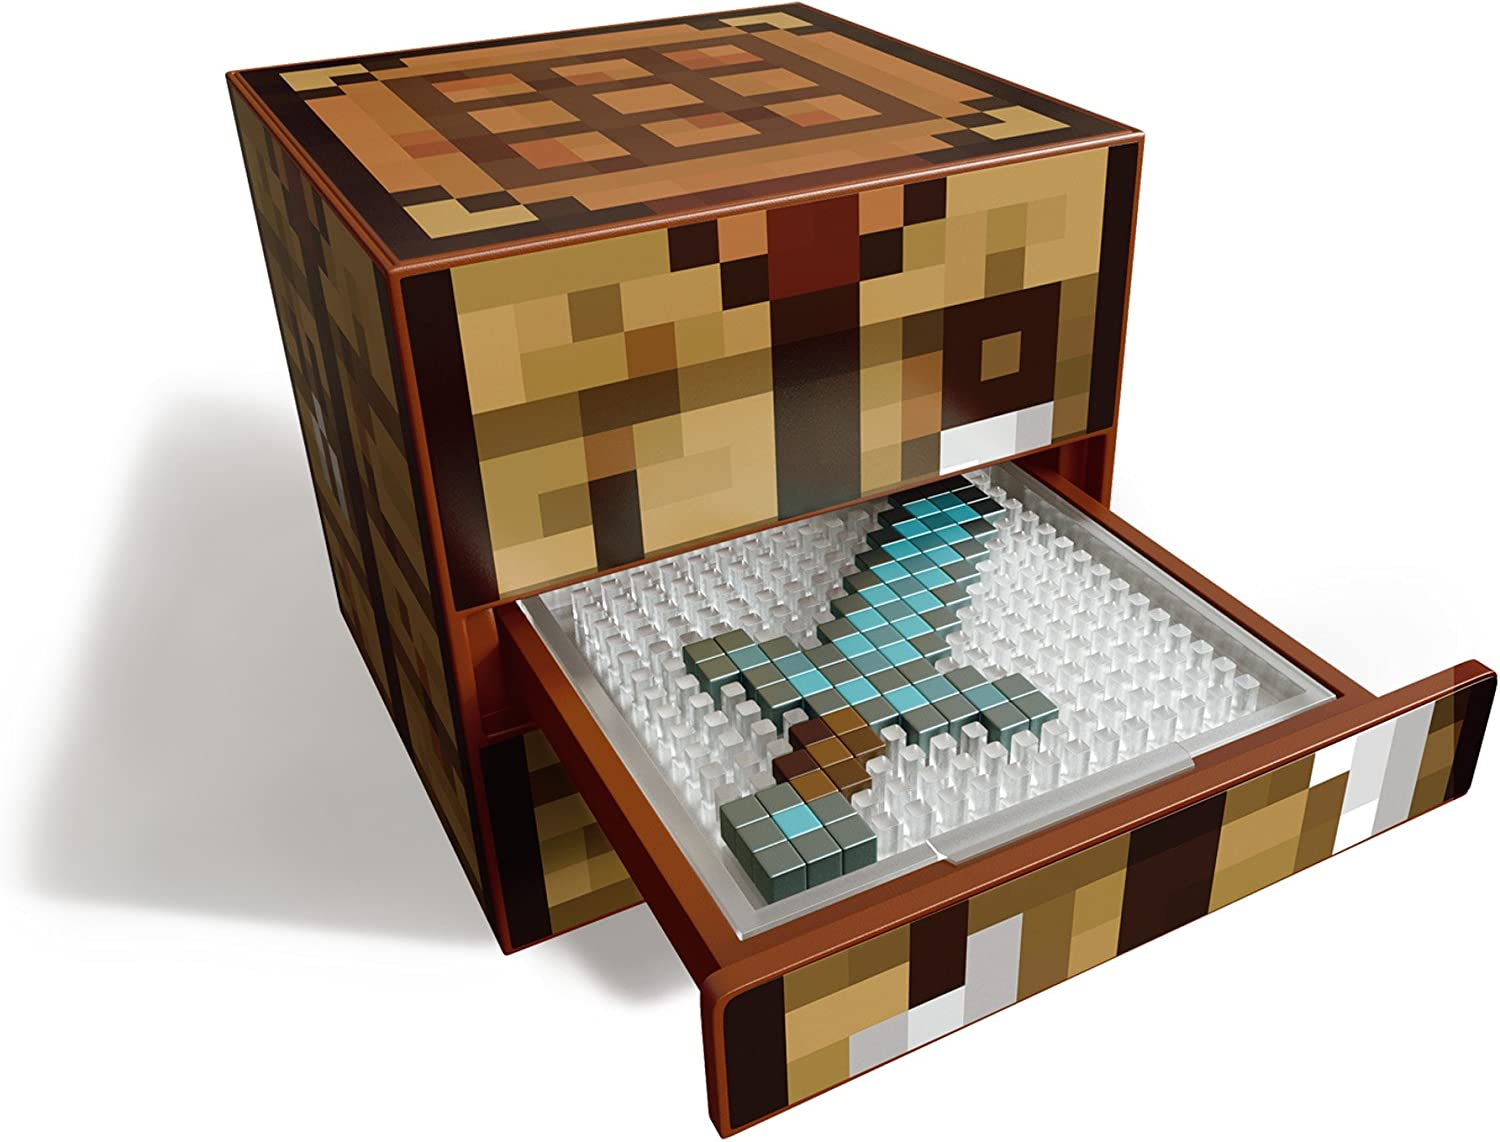 Minecraft Crafting Table Toys Games